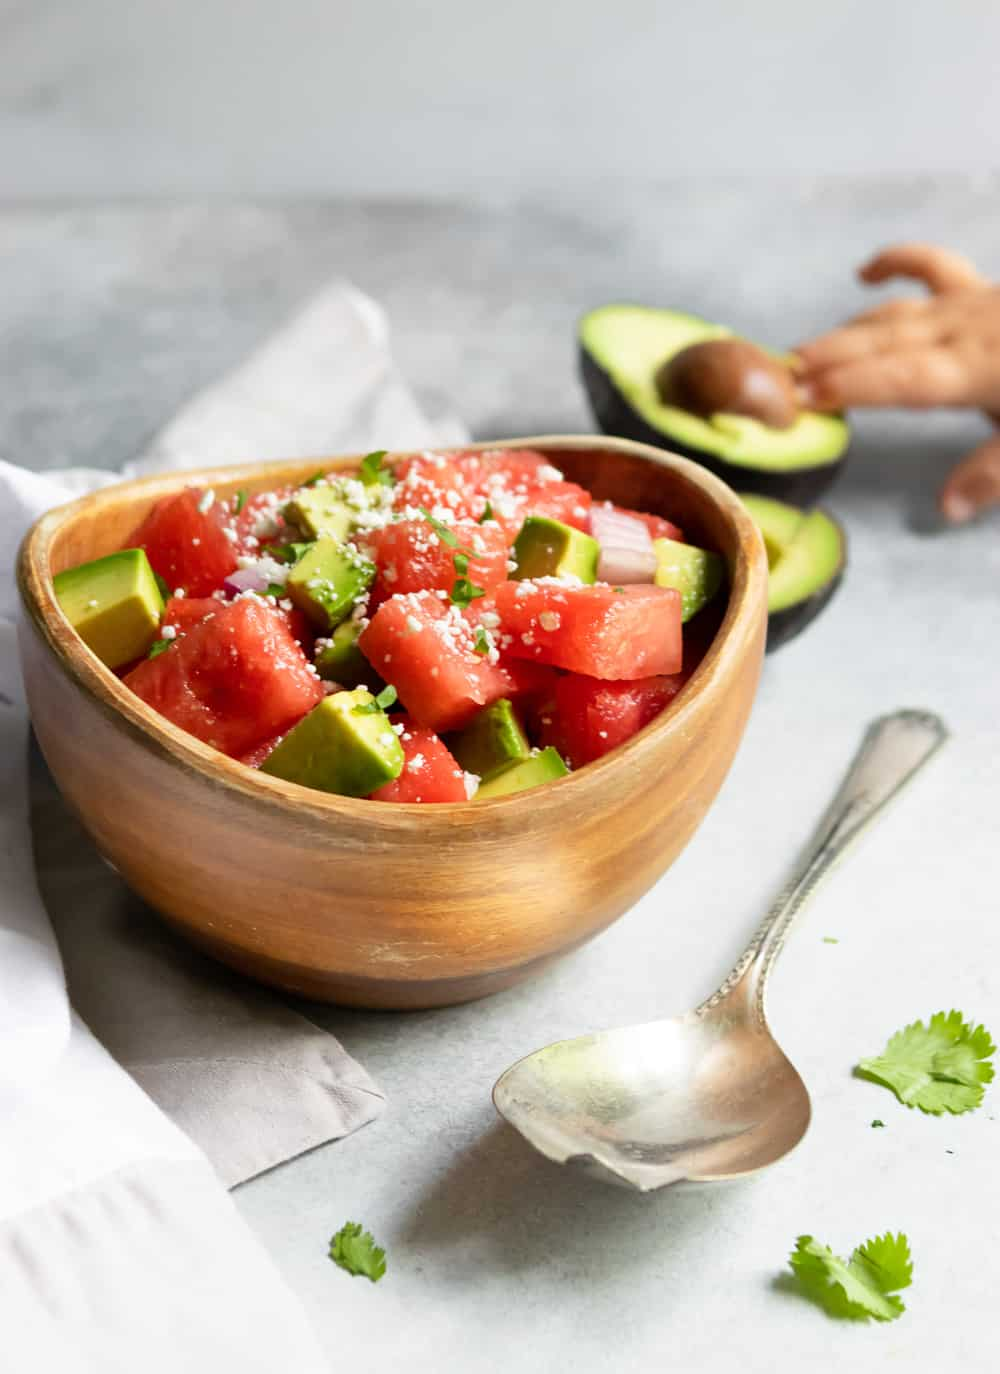 Watermelon Avocado Salad with Feta.